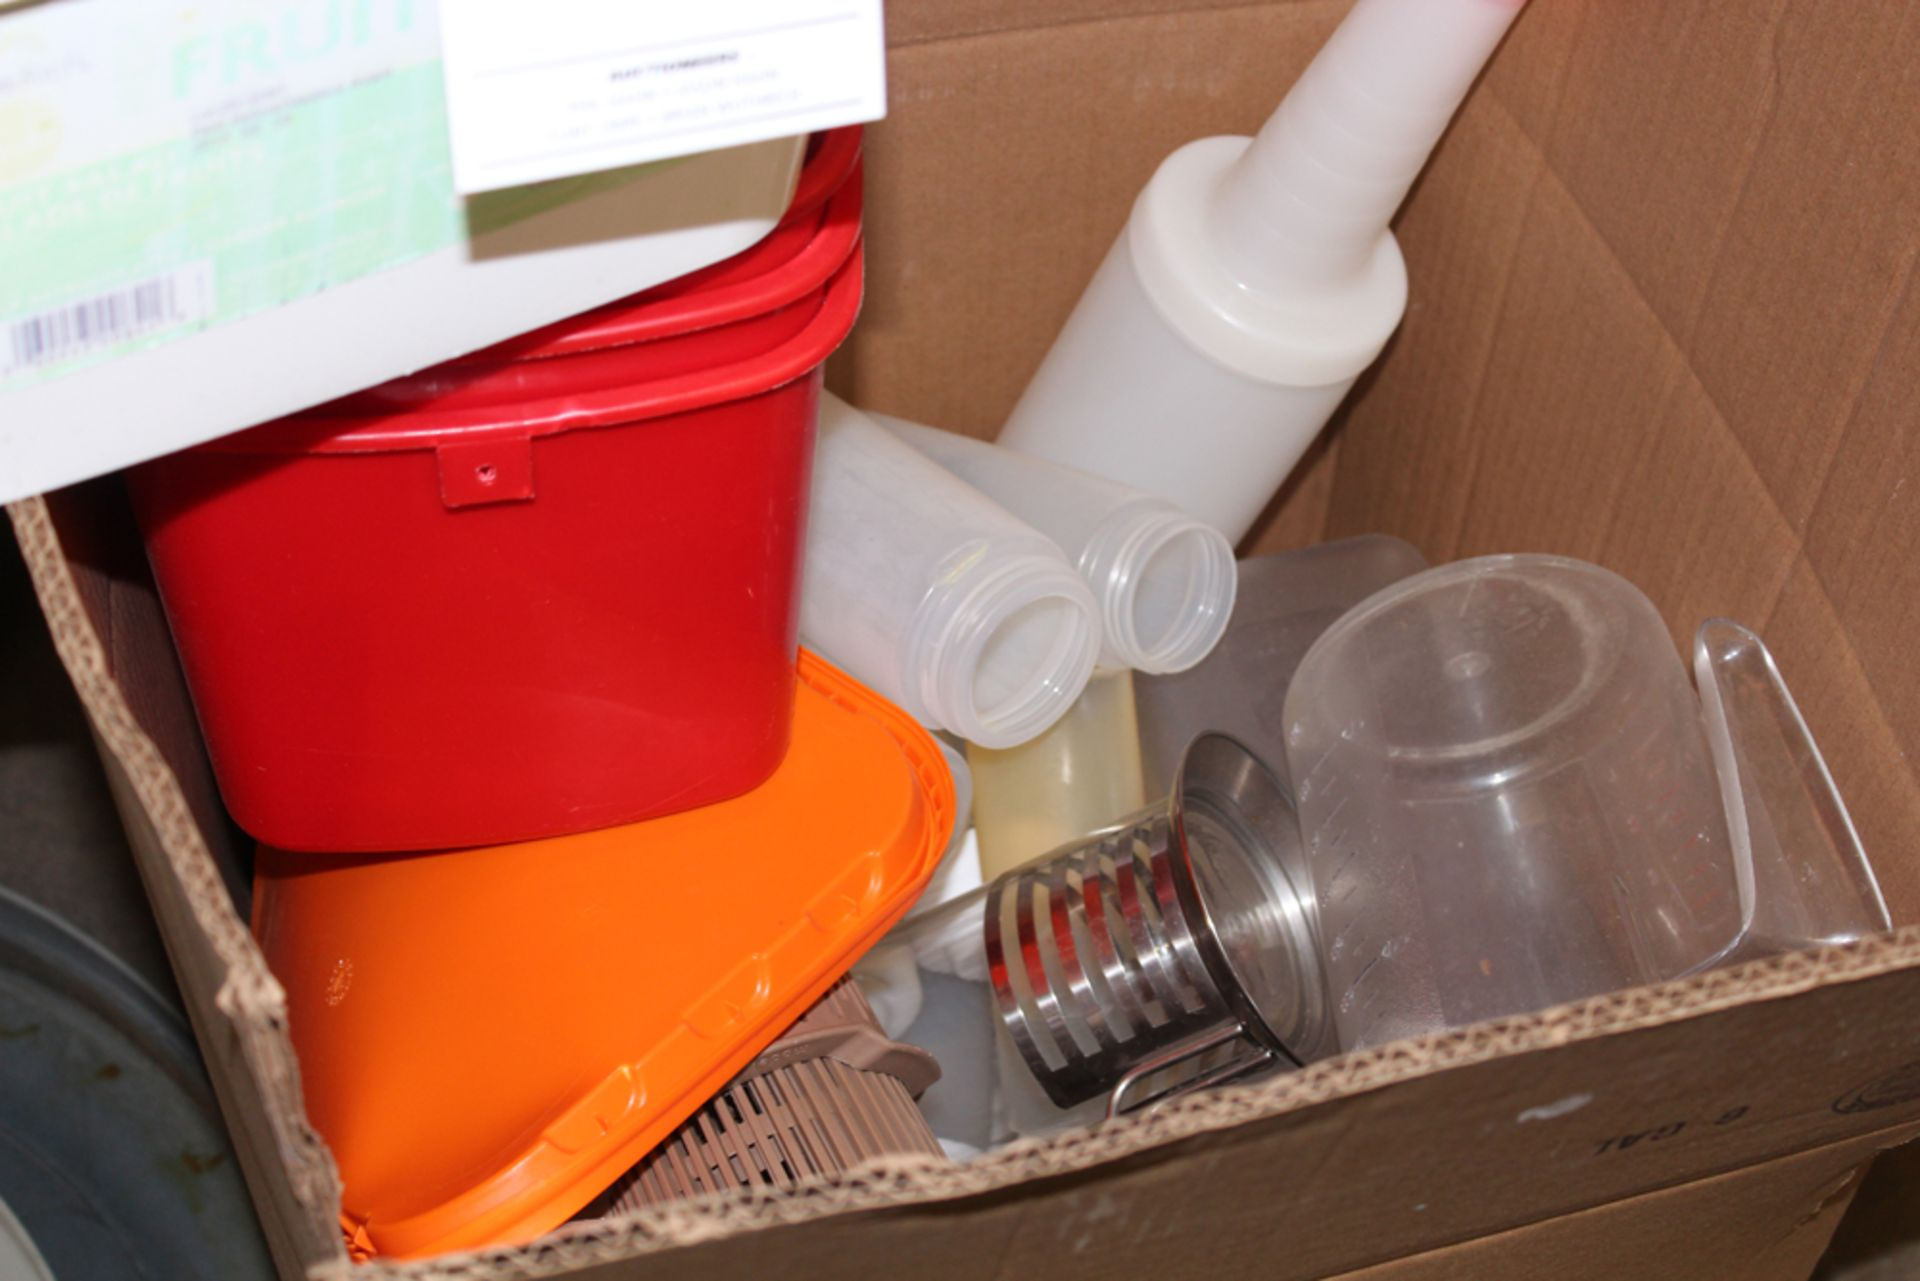 Lot 72 - trash cans and cambrio items